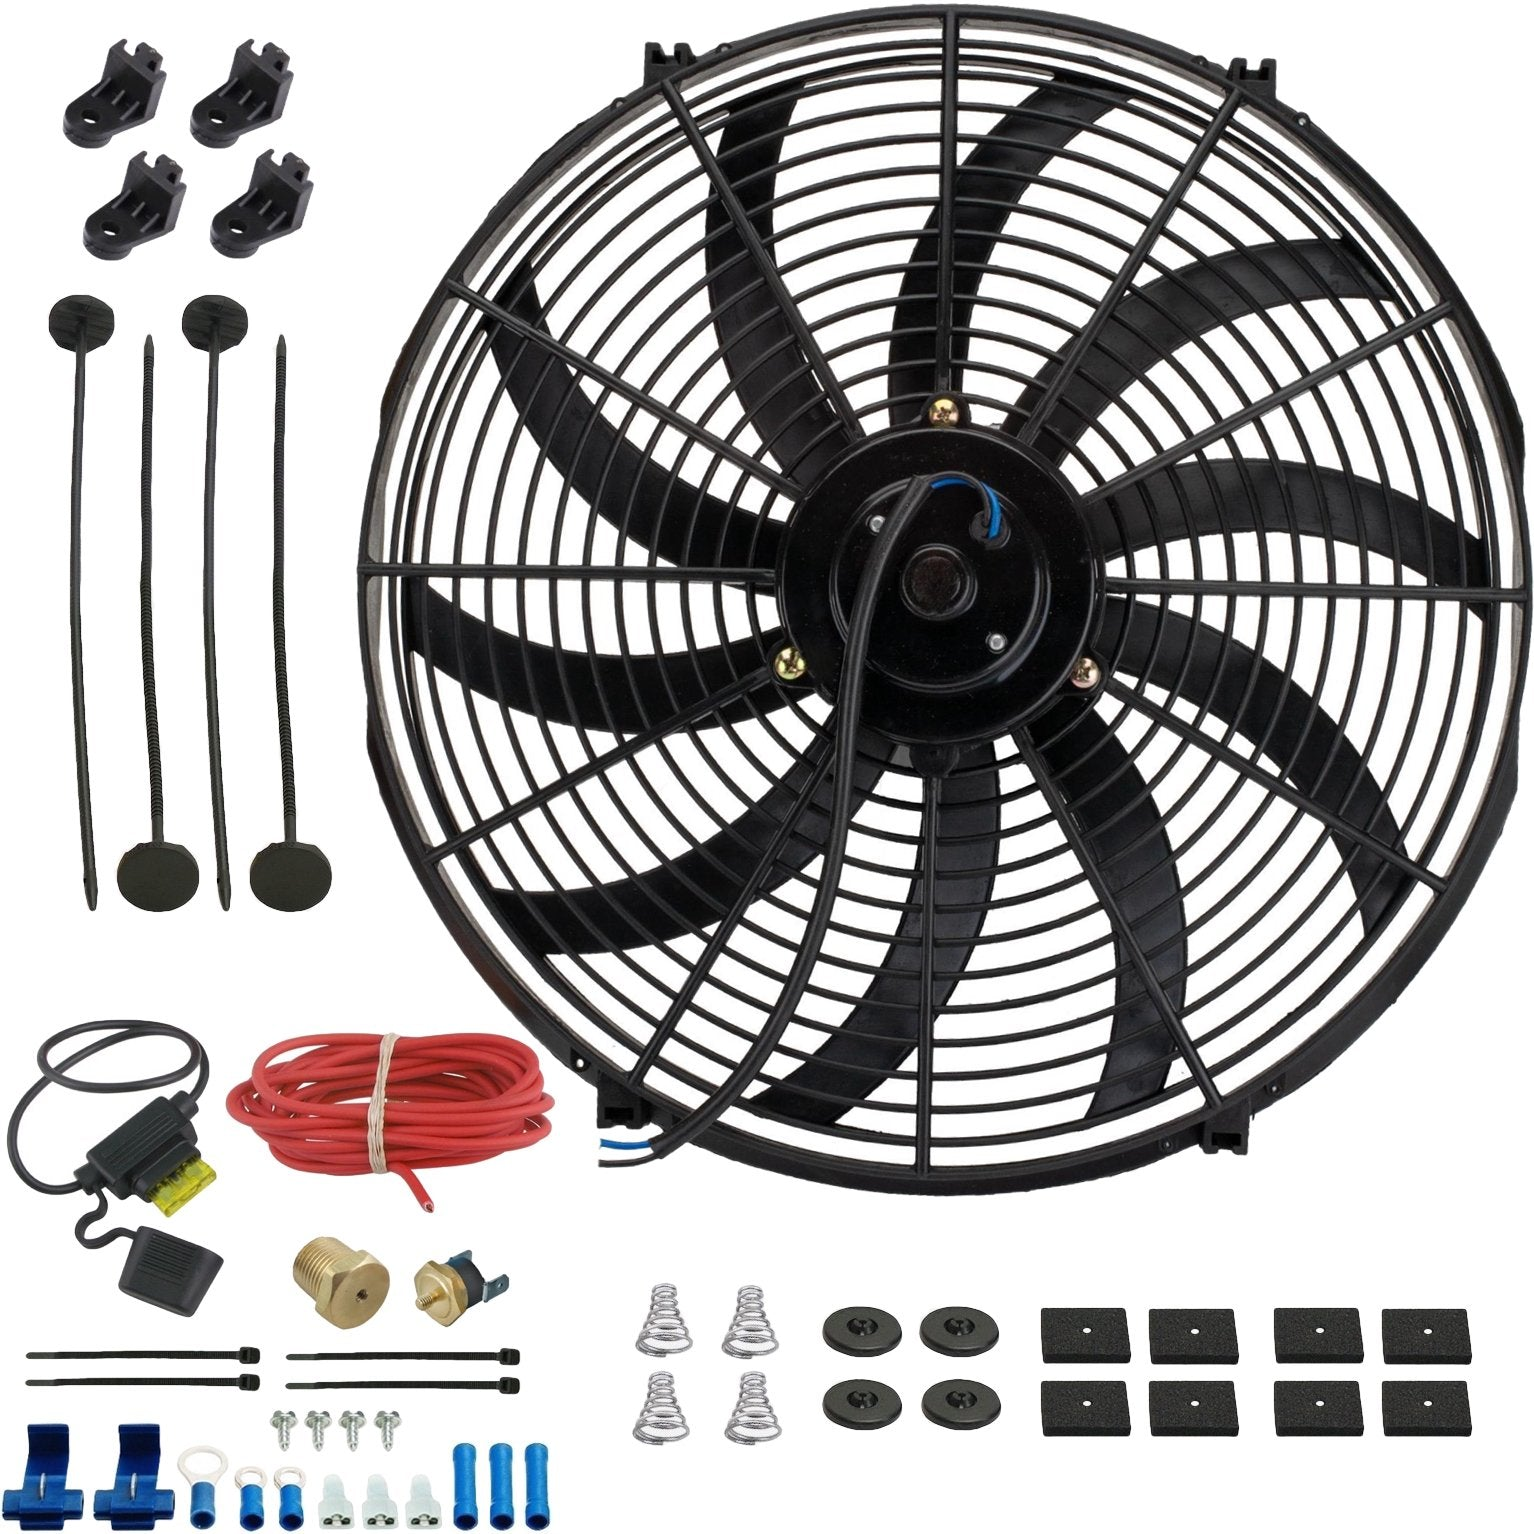 "16"" Inch Electric Auto Radiator Cooling Fan Thermostat Temperature Switch In-Line Fuse Wire Kit-Single Electric Fans-American Volt-1/8"" NPT-140'F On - 125'F Off-American Volt"